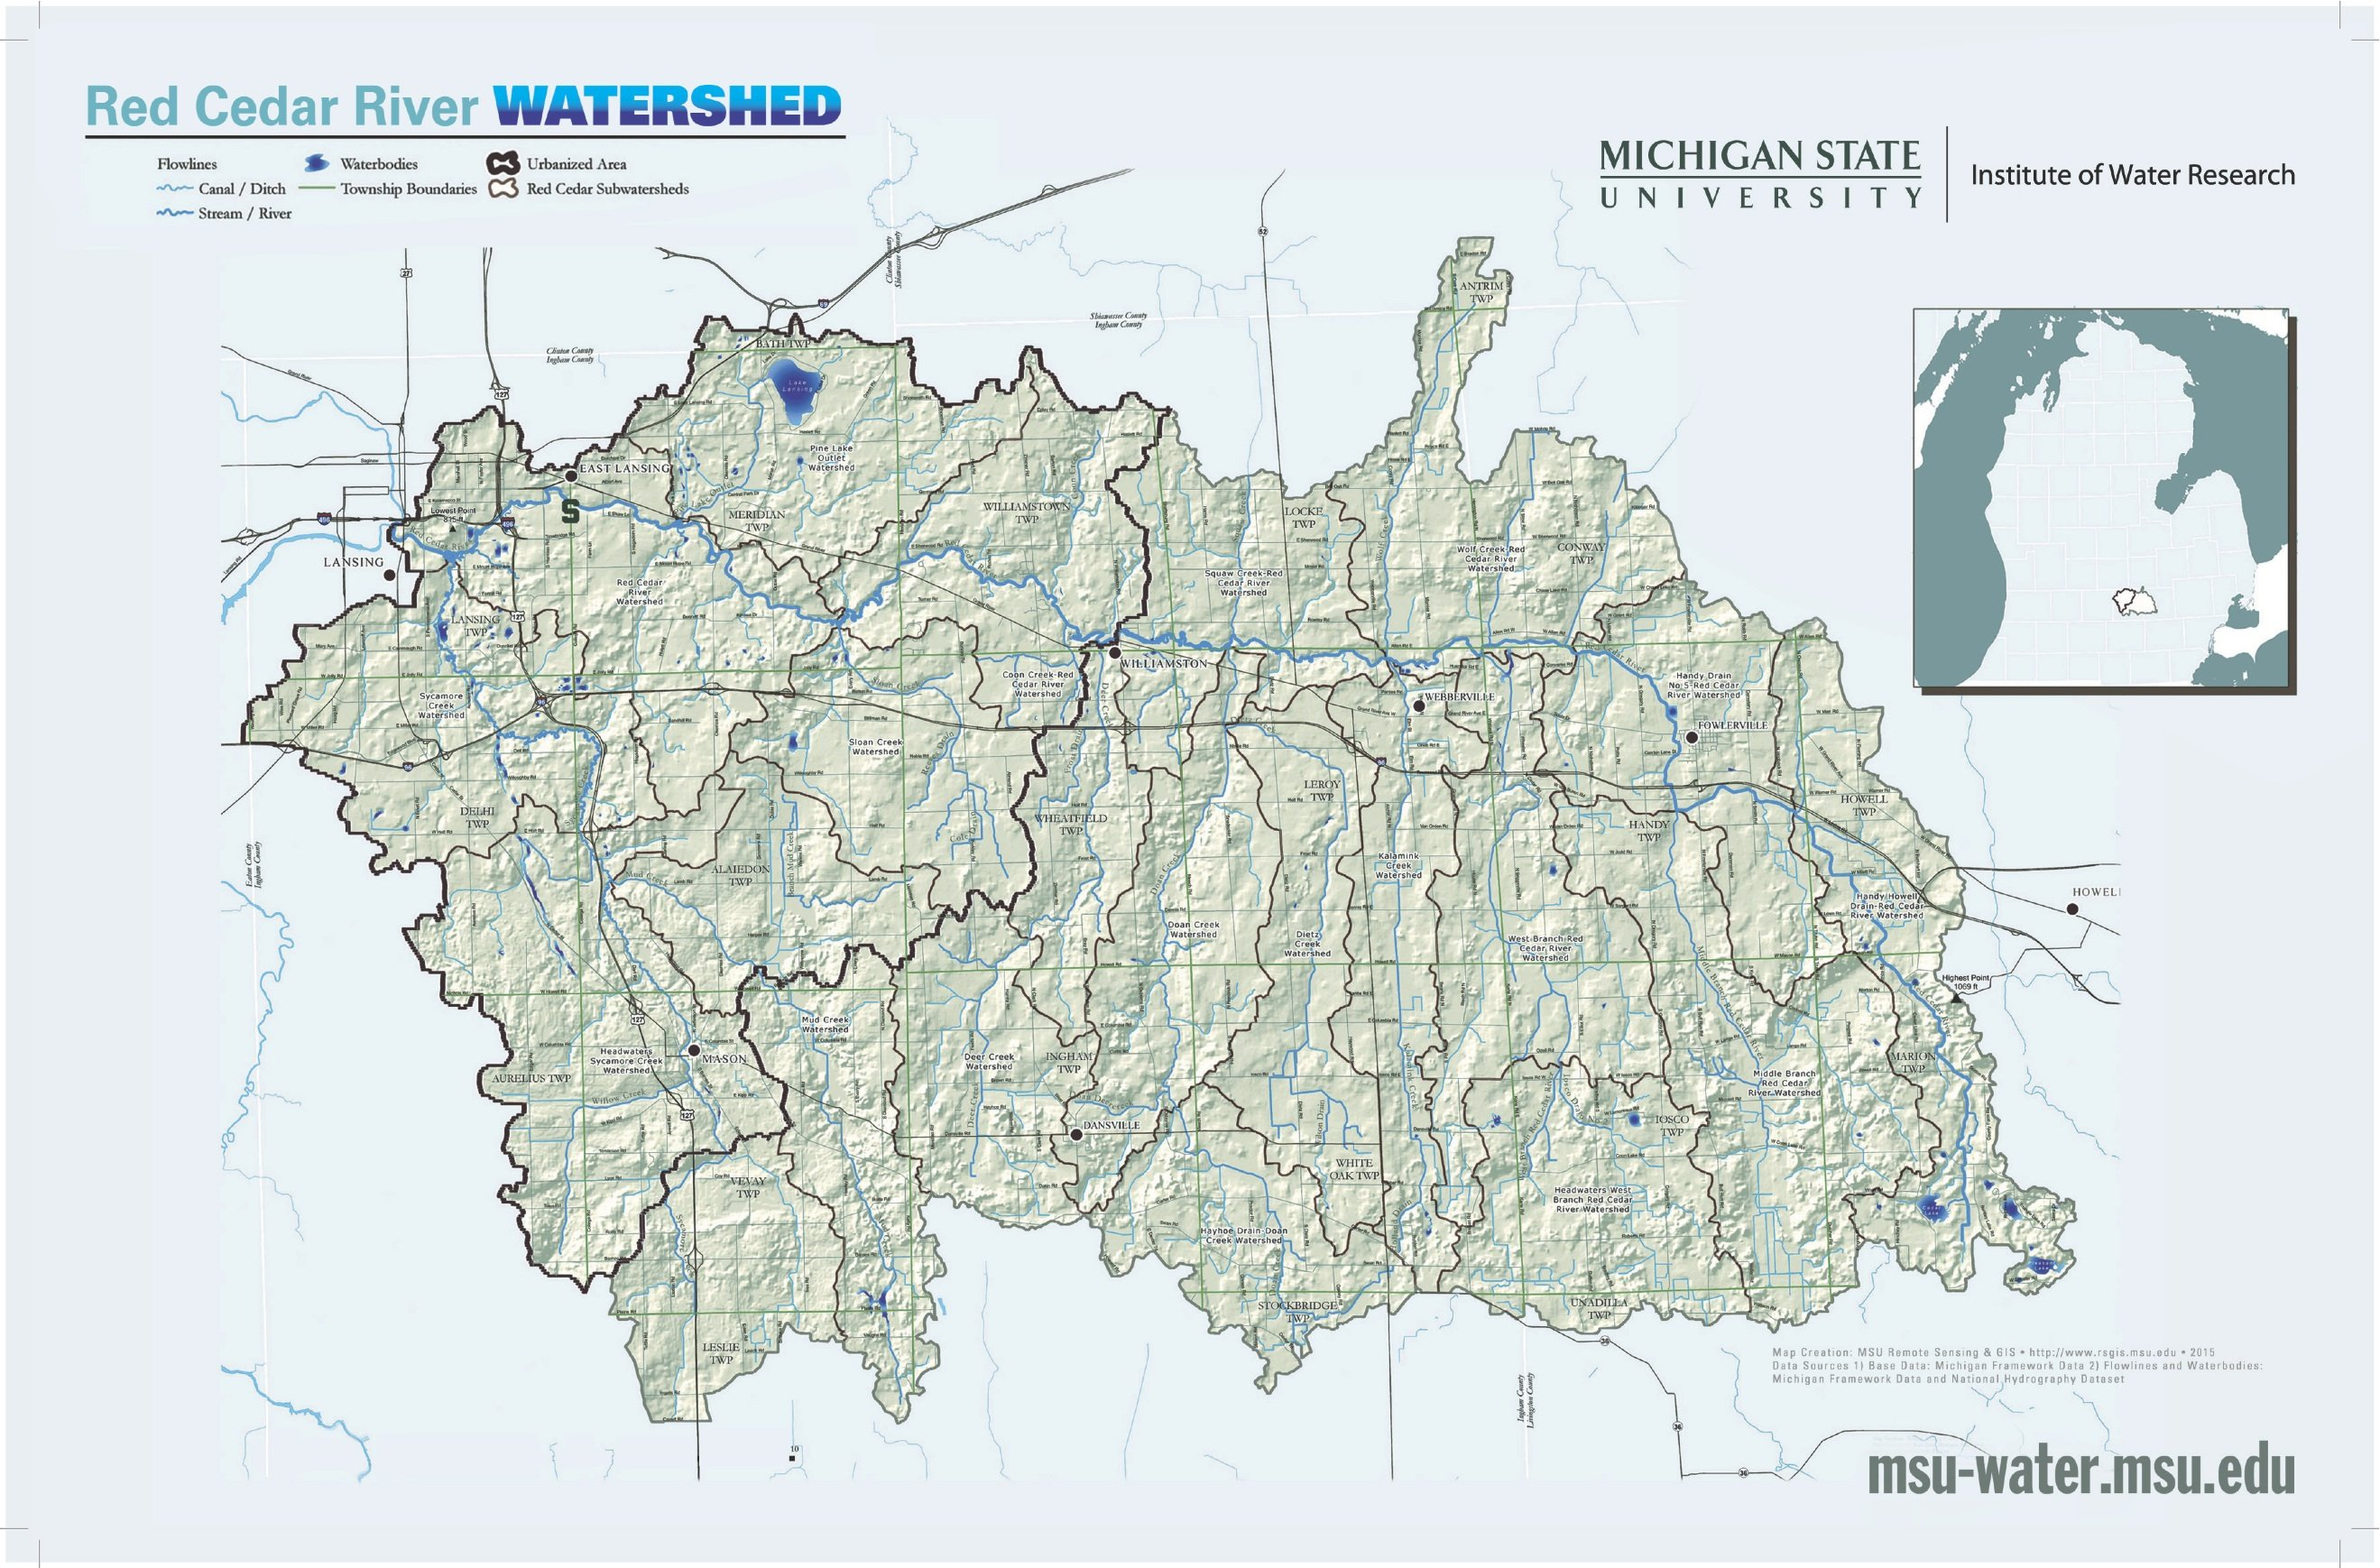 Reports Maps Red Cedar River and Watershed LibGuides at